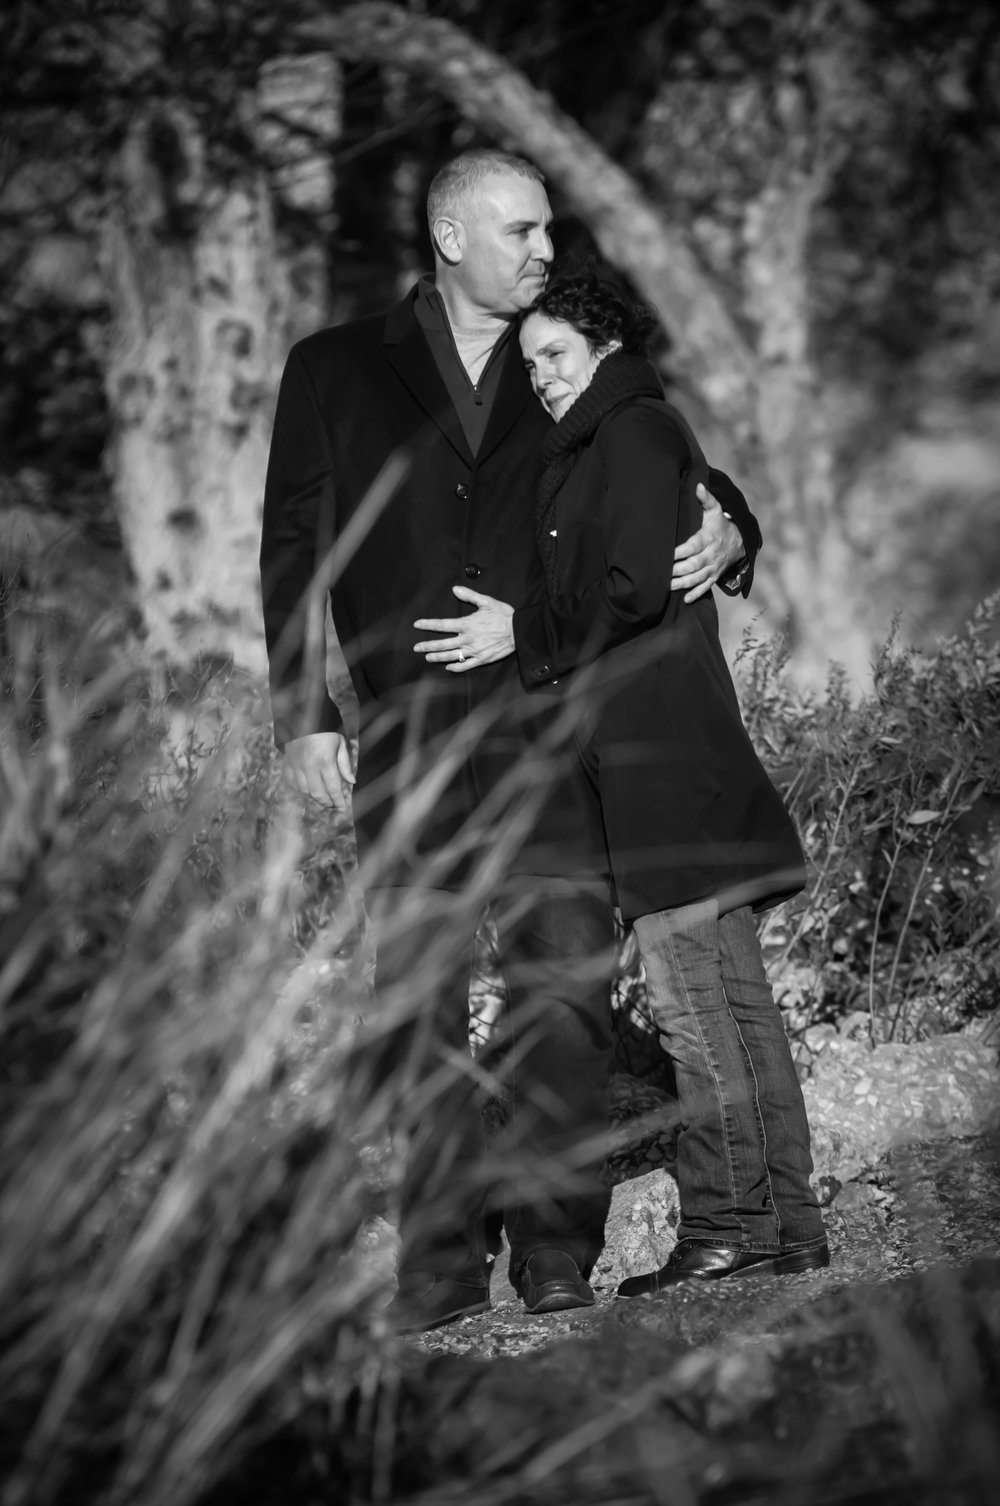 FIneArt_CarrieAnneGonzalez_NYPhotography_CarrieWestonStudios_Portrait_Engagement-5196-2.jpg